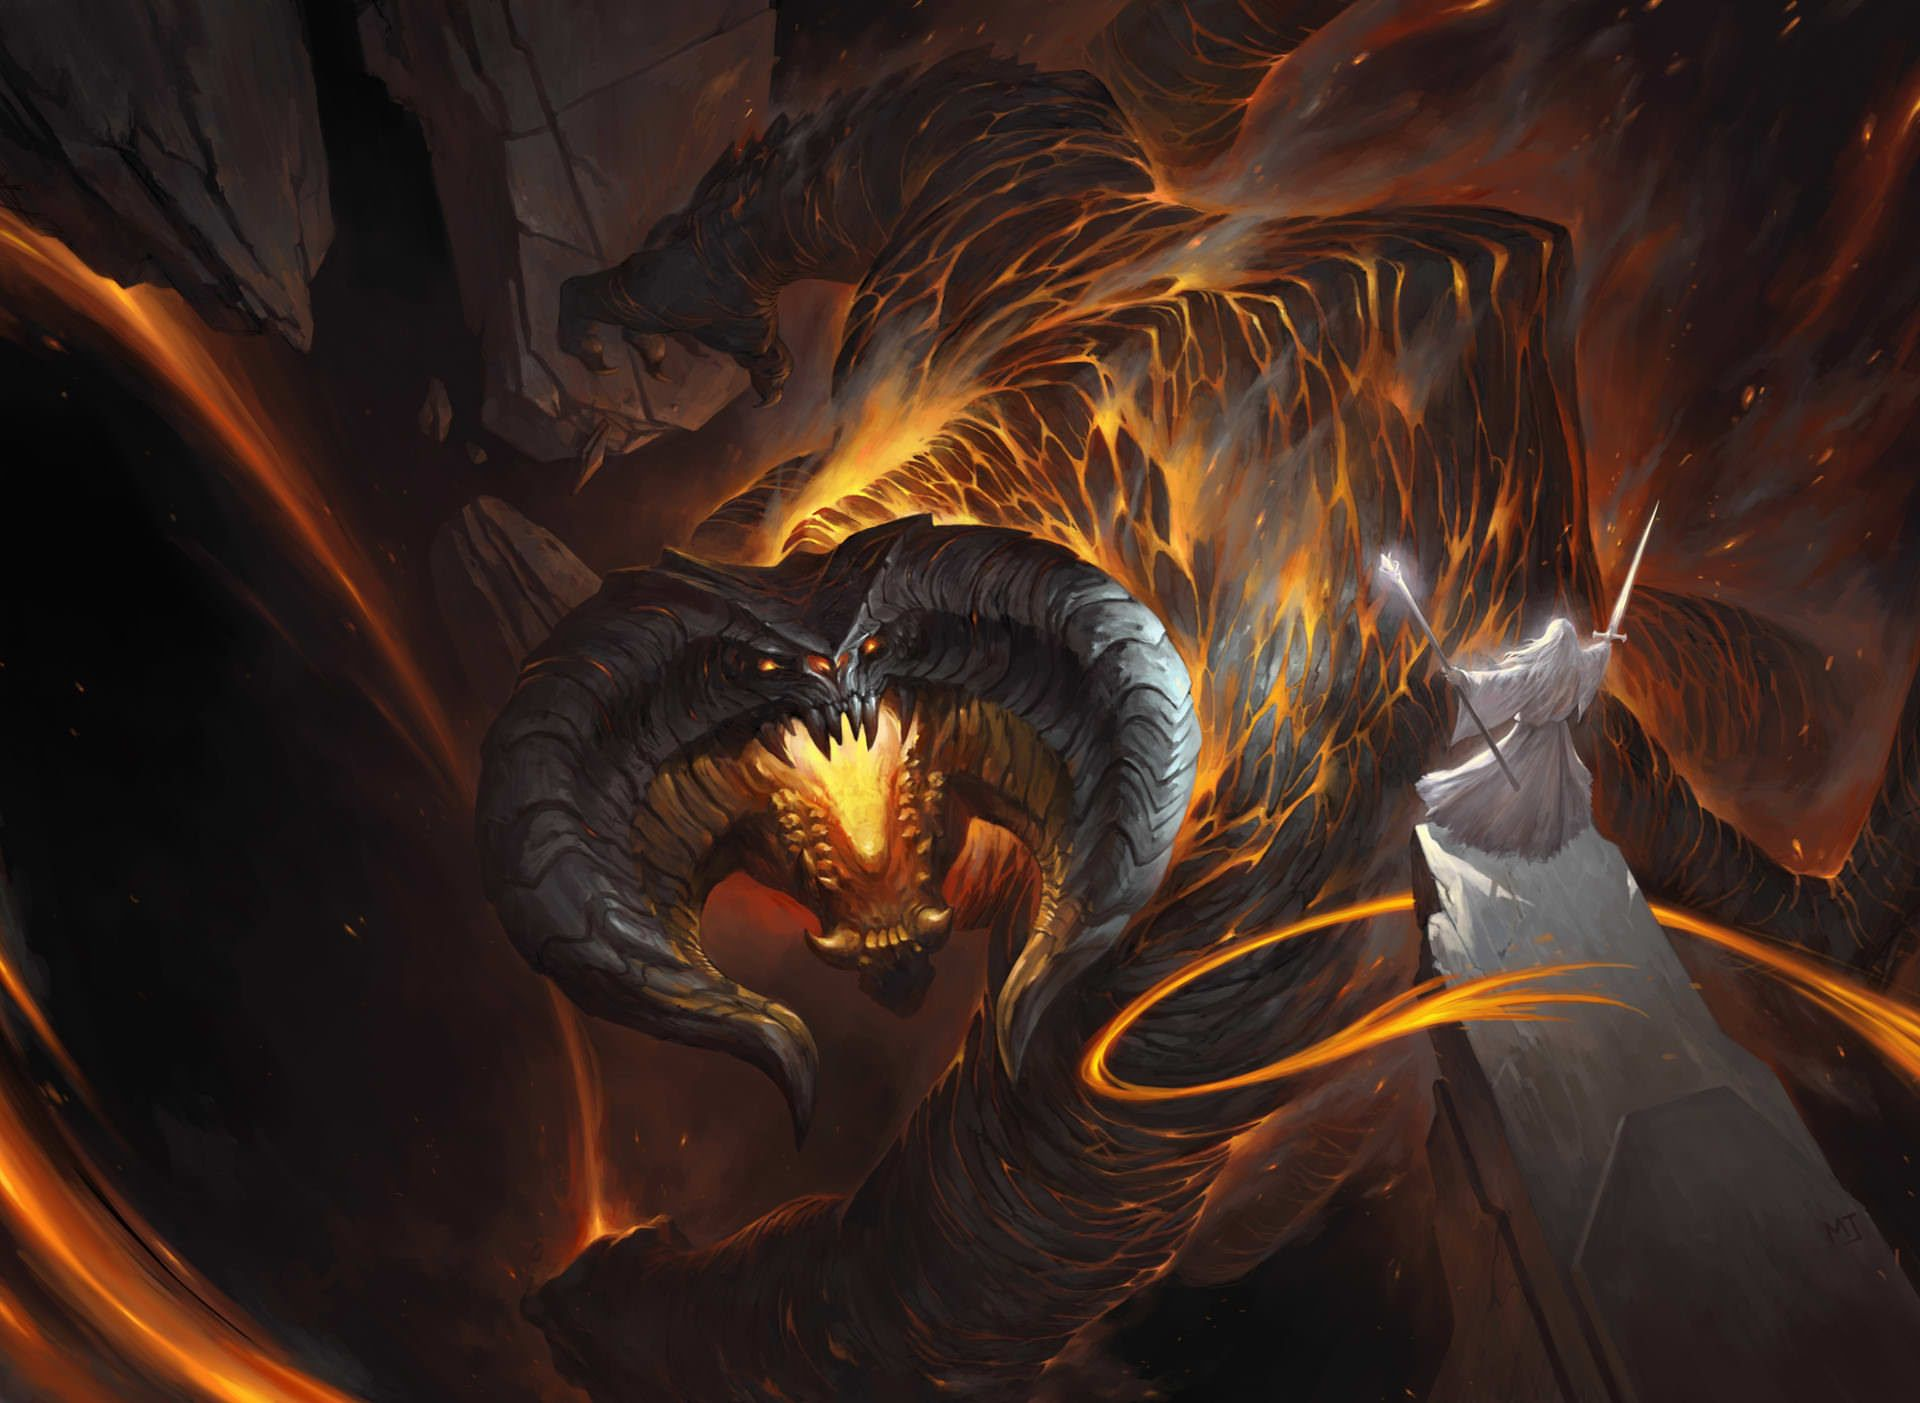 High Definition Mobile Phone And Desktop Wallpapers Balrog Gandalf Lord Of The Rings